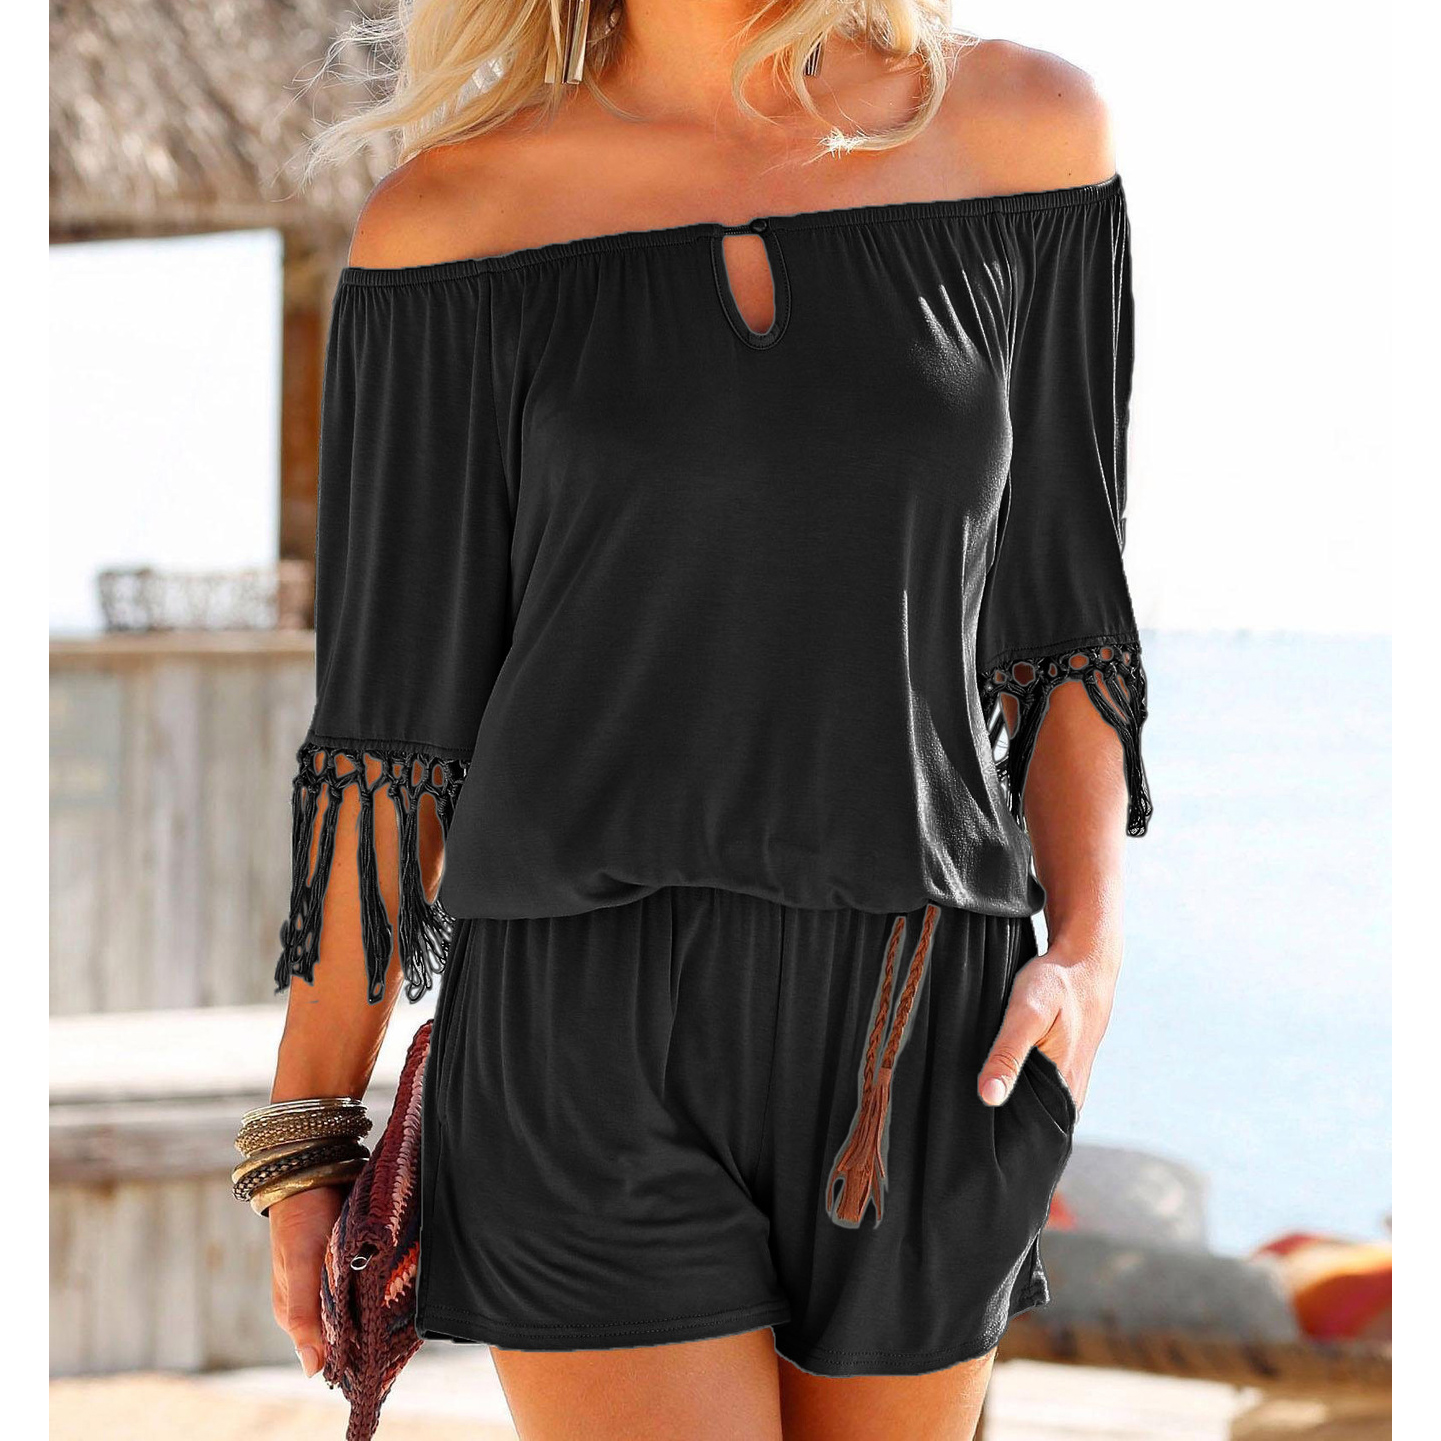 Casual Women Summer Playsuits Sexy Slash Neck Tassel Beach Jumpsuits Shorts Overalls Boho 2018 Girls Pockets Rompers XXL GV923 5